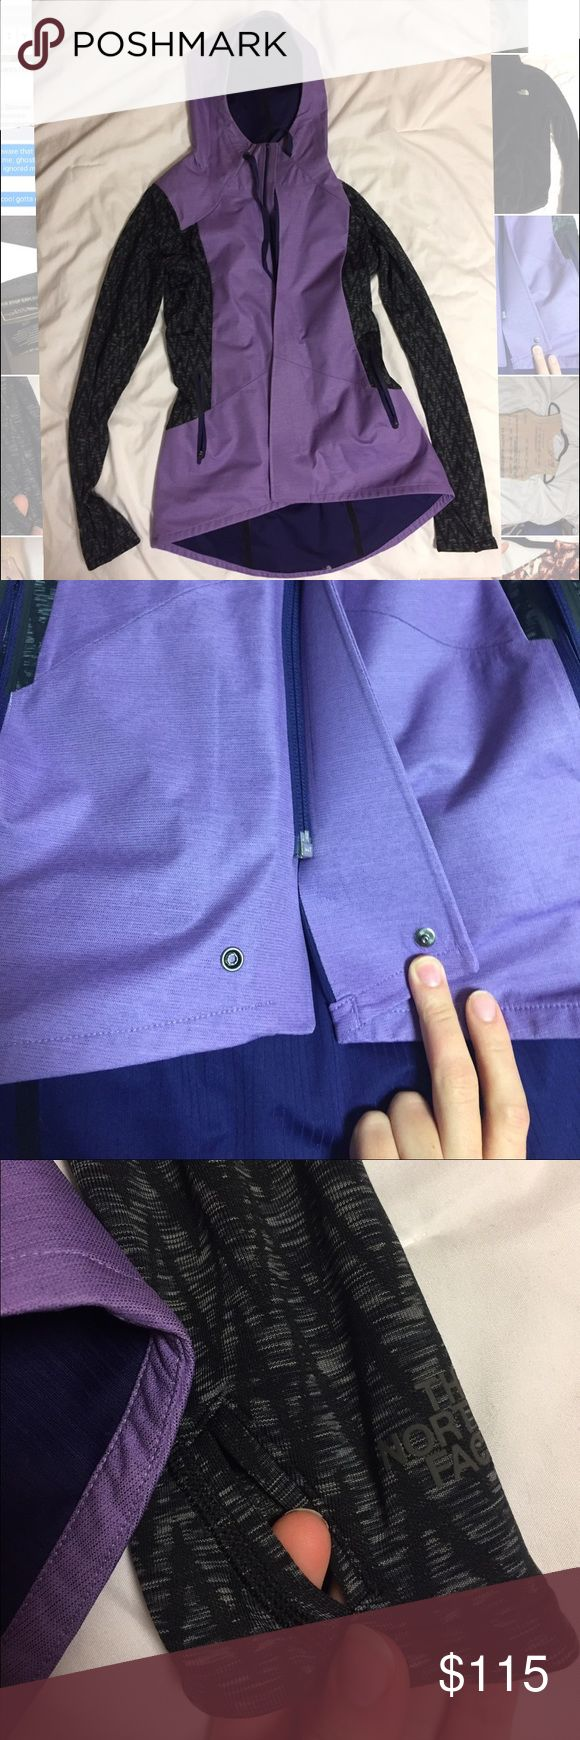 North Face Rain Jacket North Face; Size XS. Purple and gray rain coat. There's a hidden zipper, tie on the hood, a button clasp and thumb holes at the arms. The back of the coat features a little high-low shape as it covers the backside a few more inches than the front. I wore this once, and it just wasn't my style. It's brand new and in amazing condition. Open to trades and offers! North Face Jackets & Coats